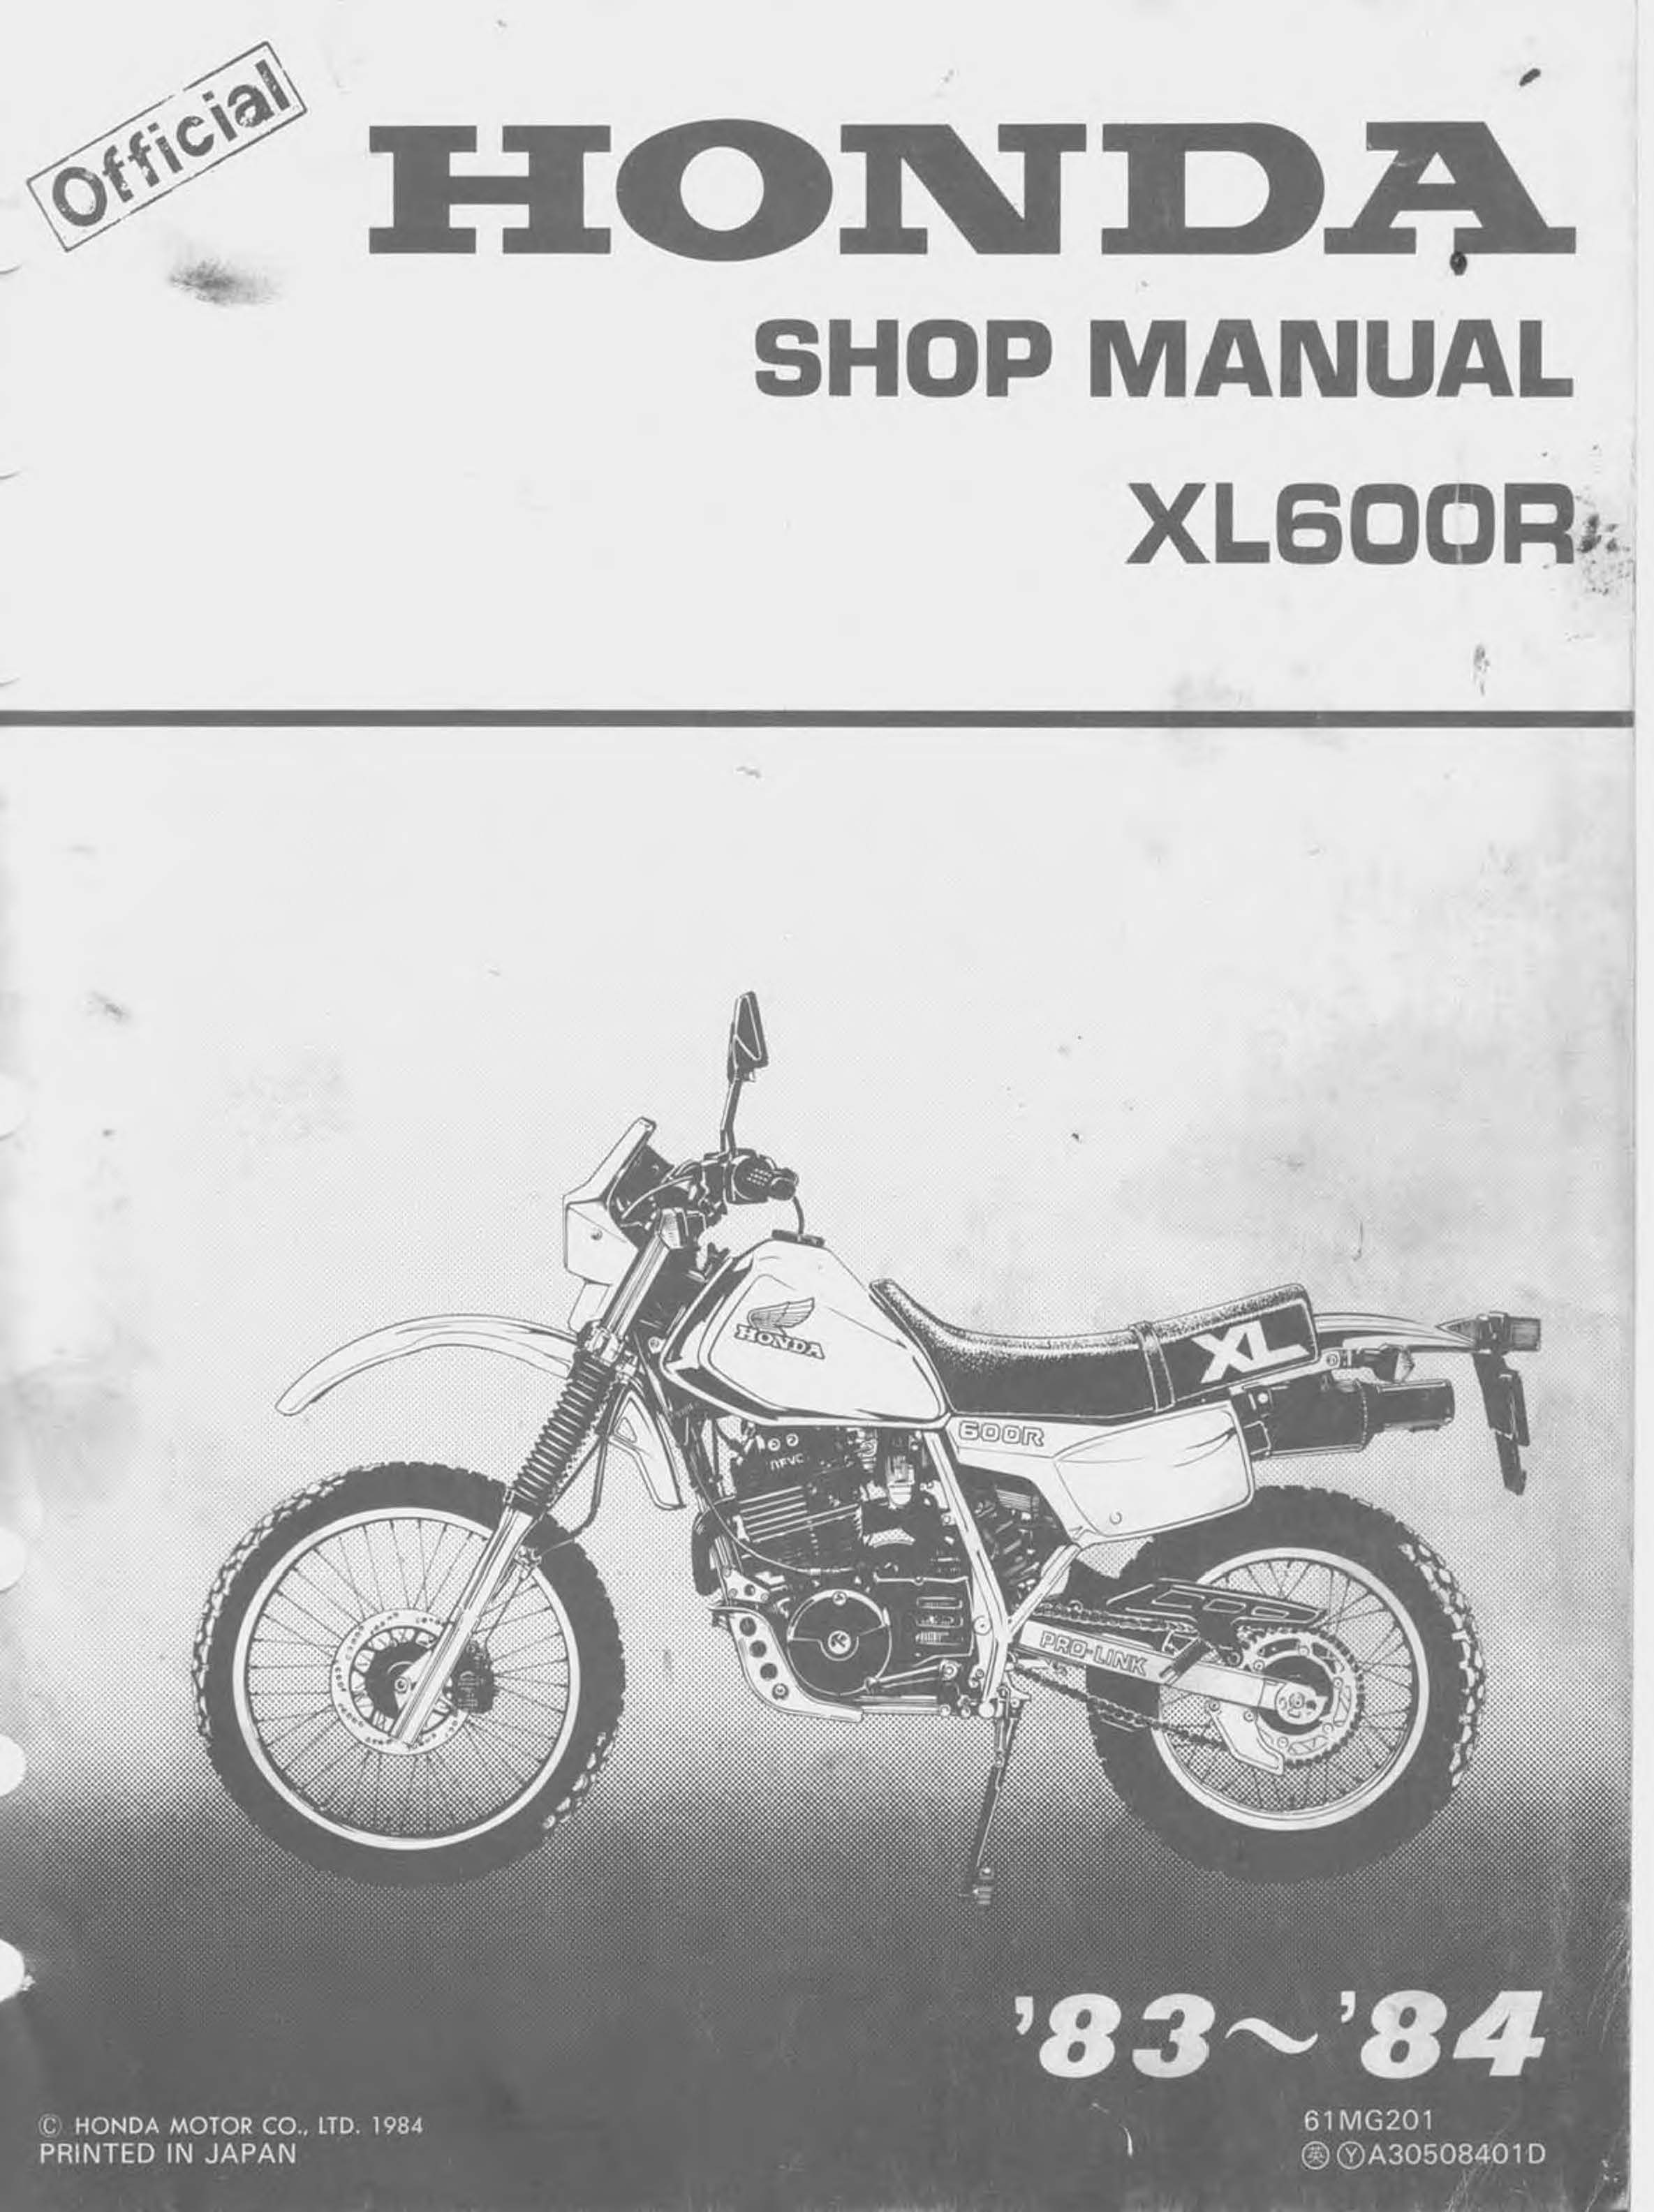 Workshop Manual for Honda XL600R (1983-1984)